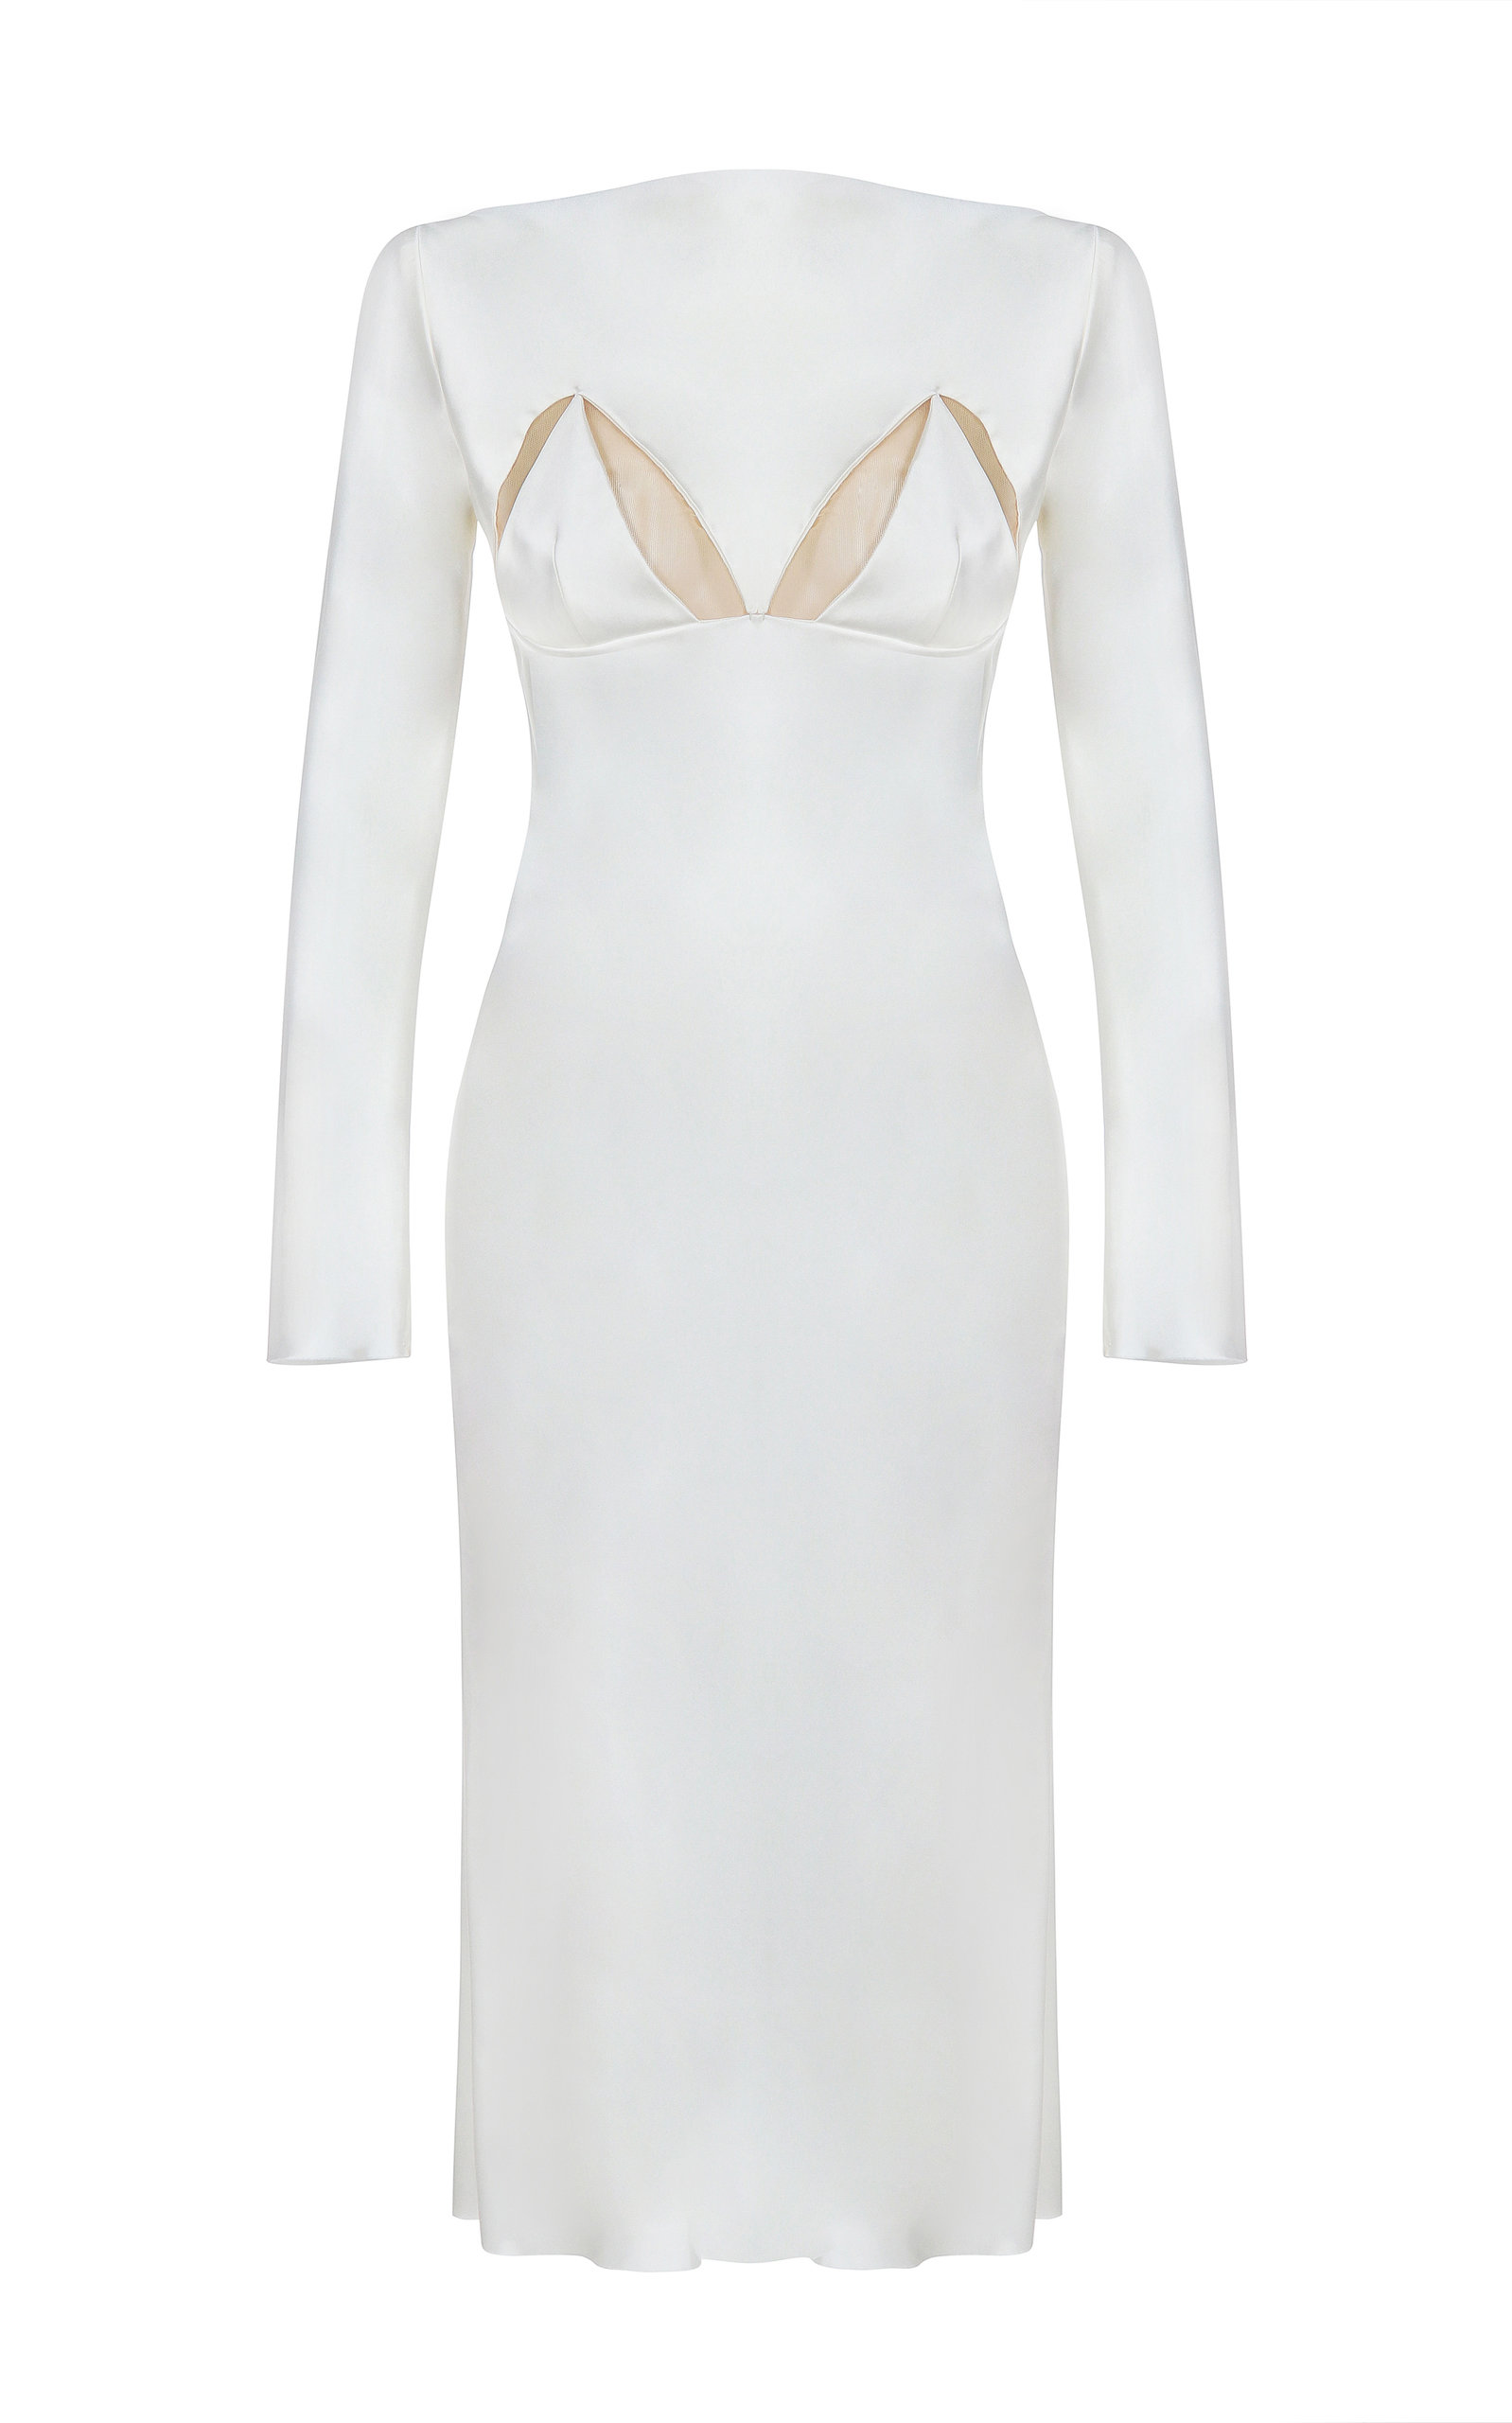 Buy BEVZA Bianca Cutout Dress online, shop BEVZA at the best price